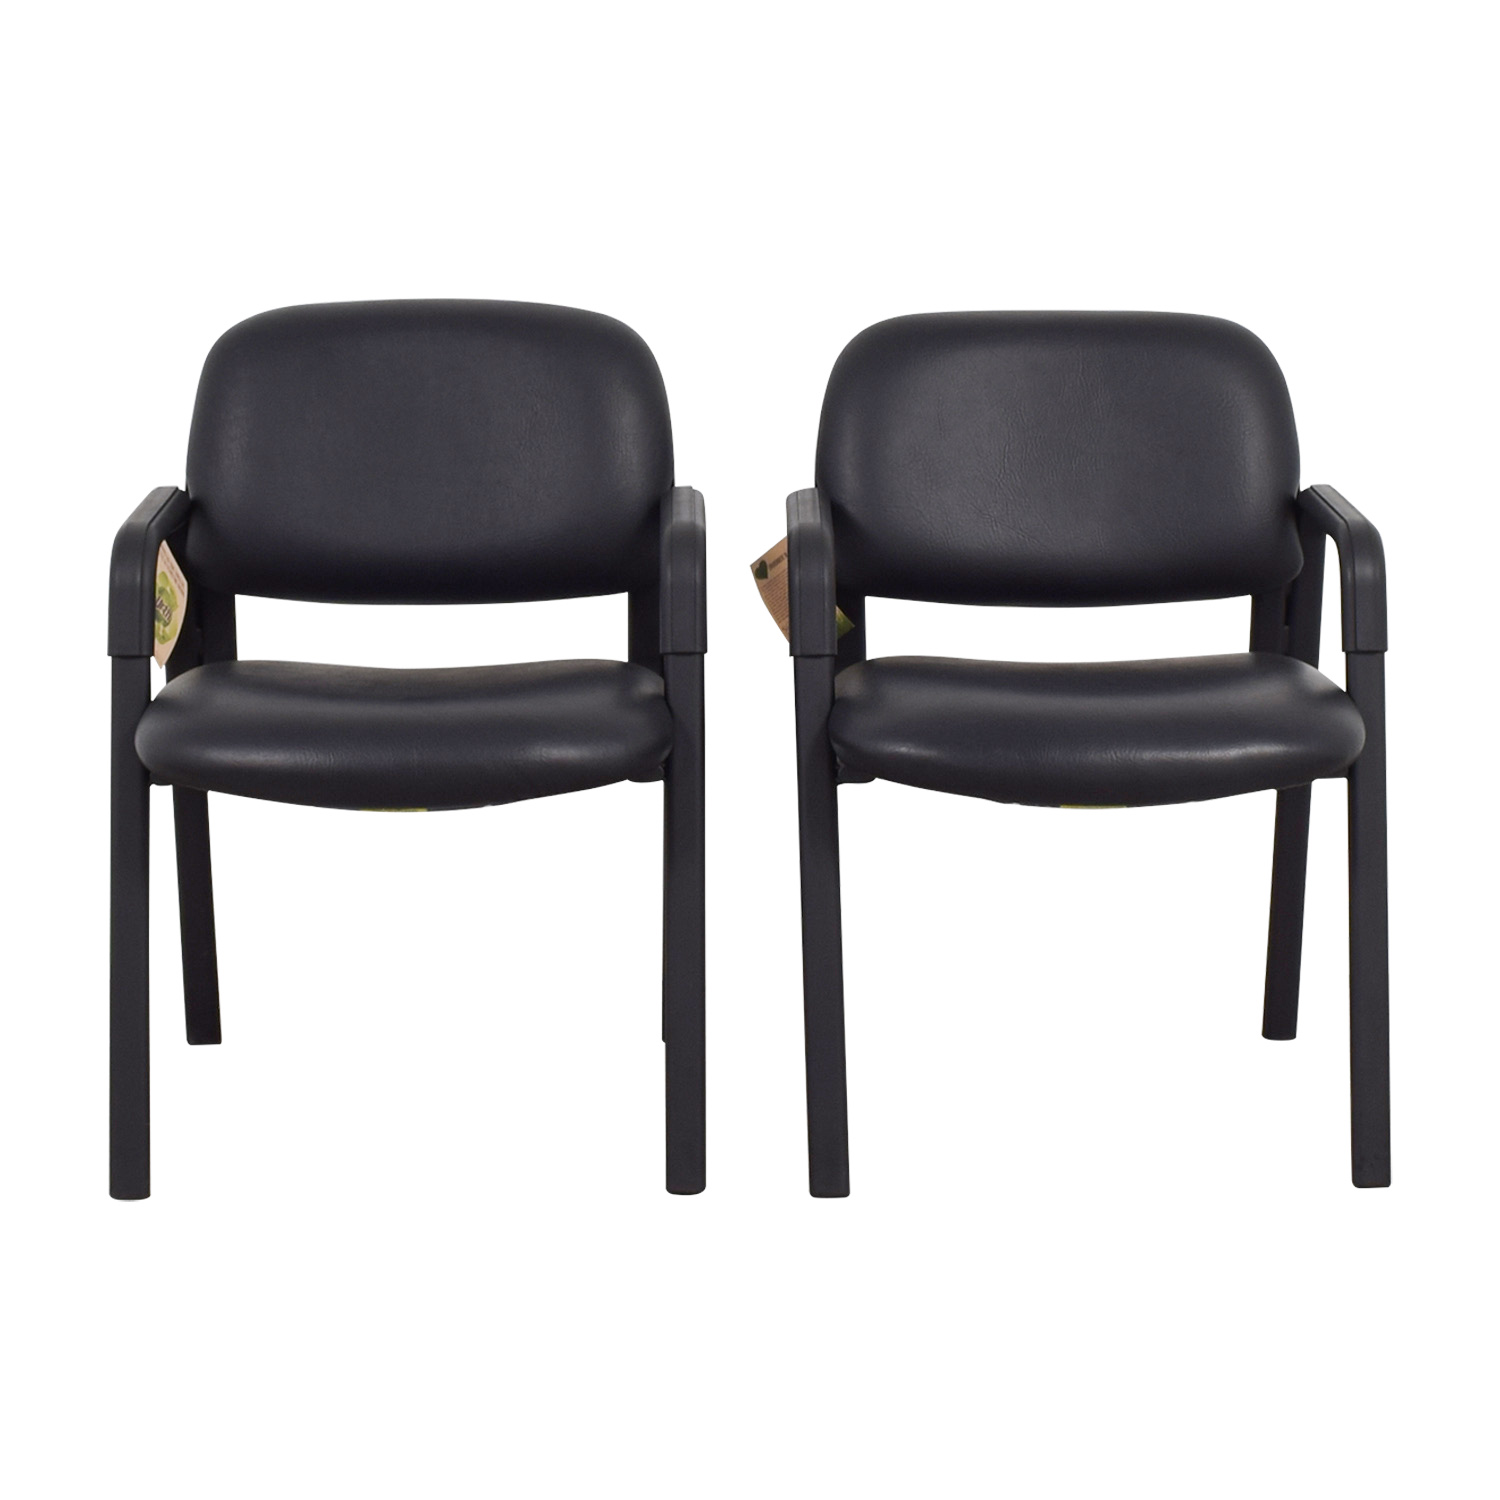 Urth Urth Cava Black Leather Chairs discount